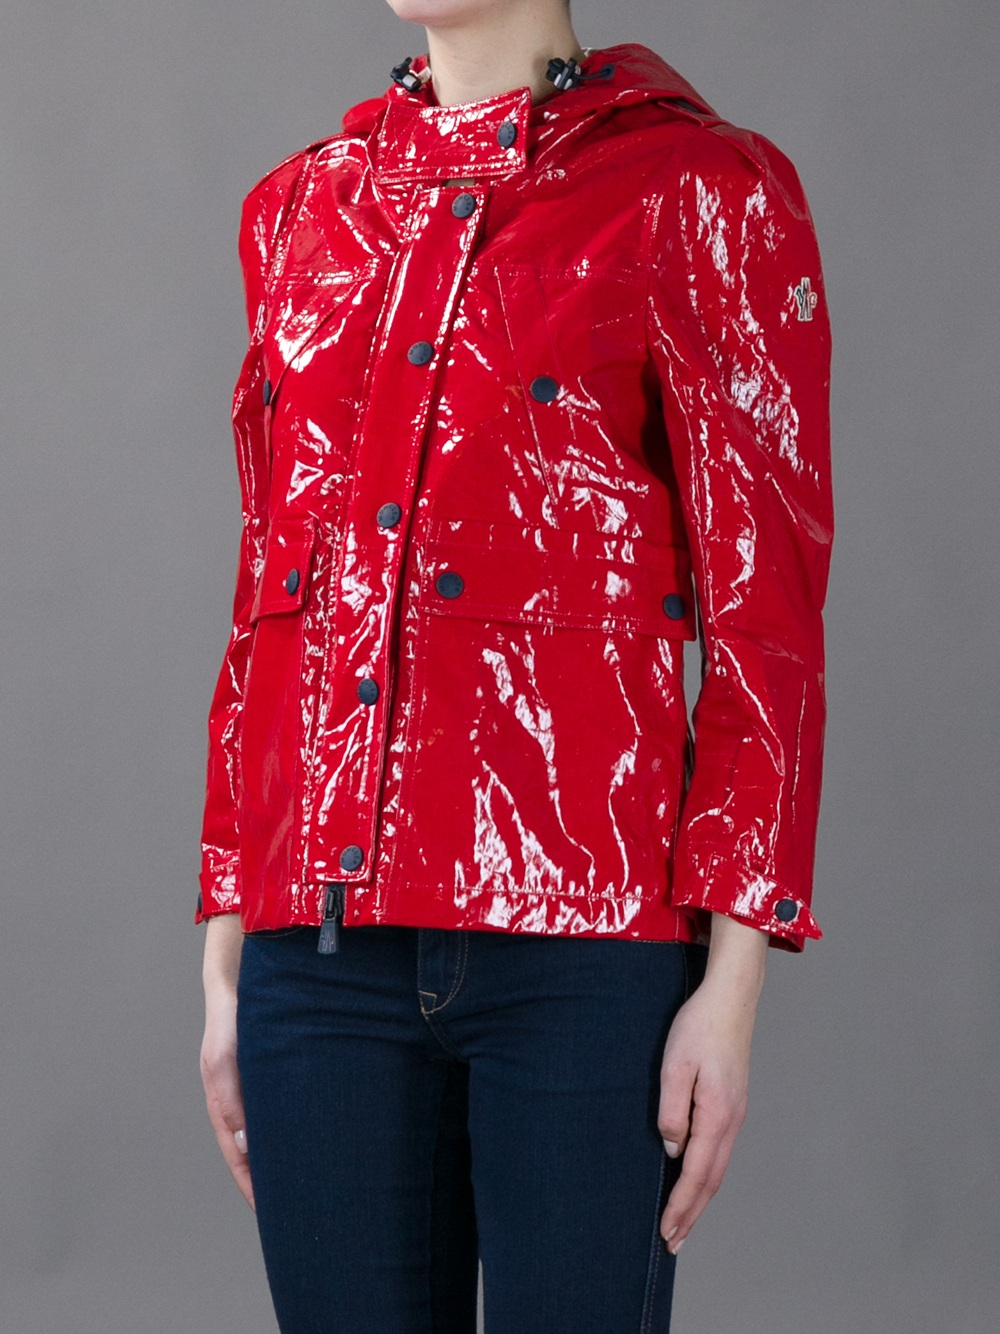 red moncler raincoat